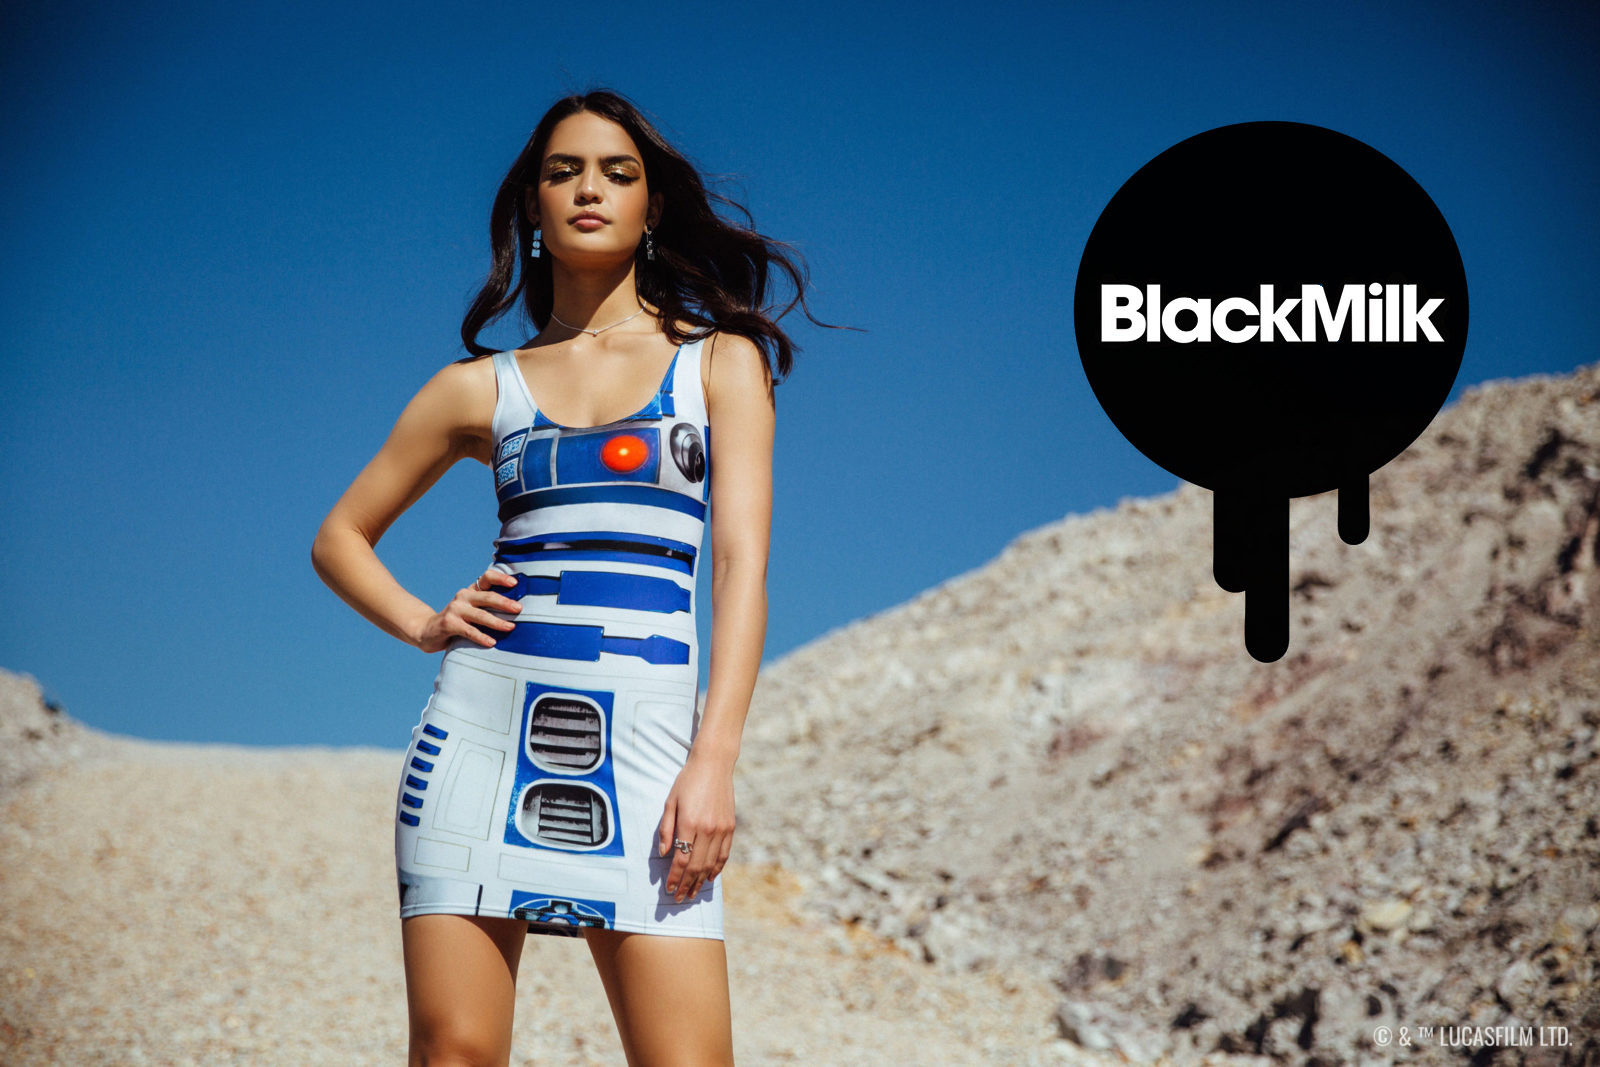 Interview with BlackMilk Clothing CEO Sally Osburn